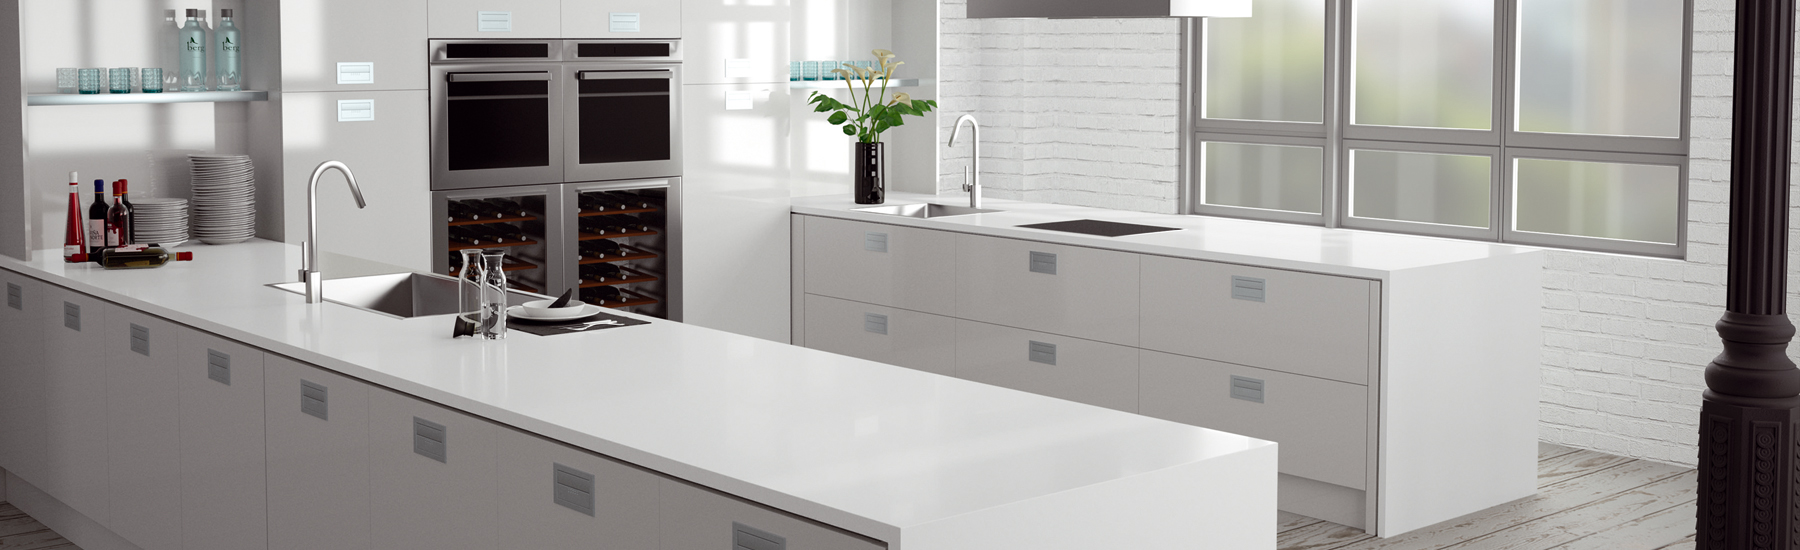 Kitechn Worktops London